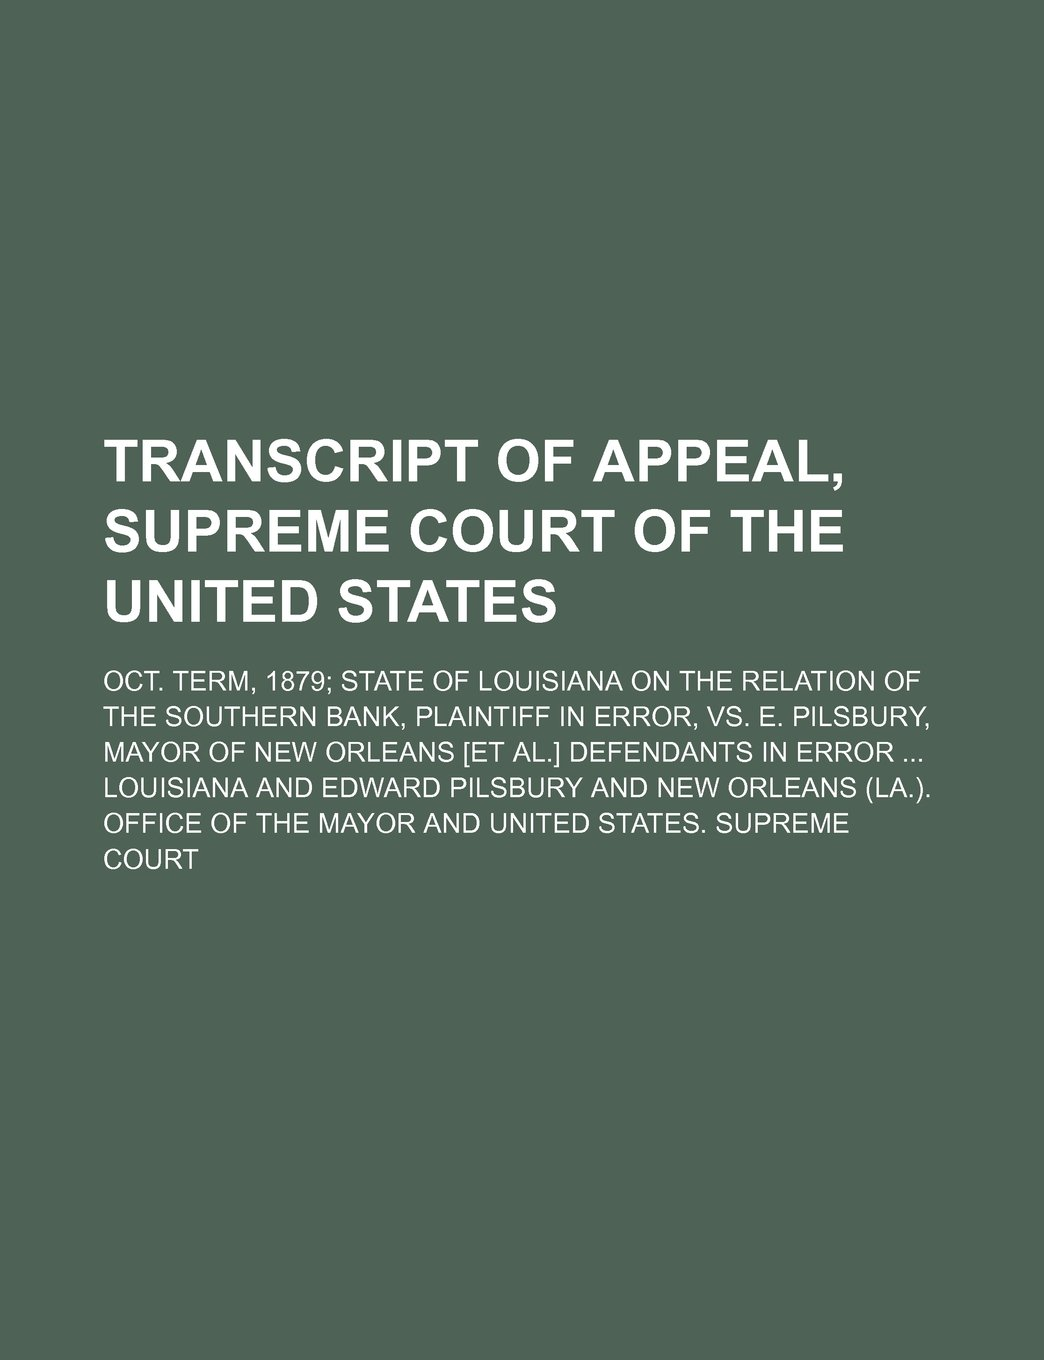 Transcript of Appeal, Supreme Court of the United States; Oct. Term, 1879 State of Louisiana on the Relation of the Southern Bank, Plaintiff in Error, ebook